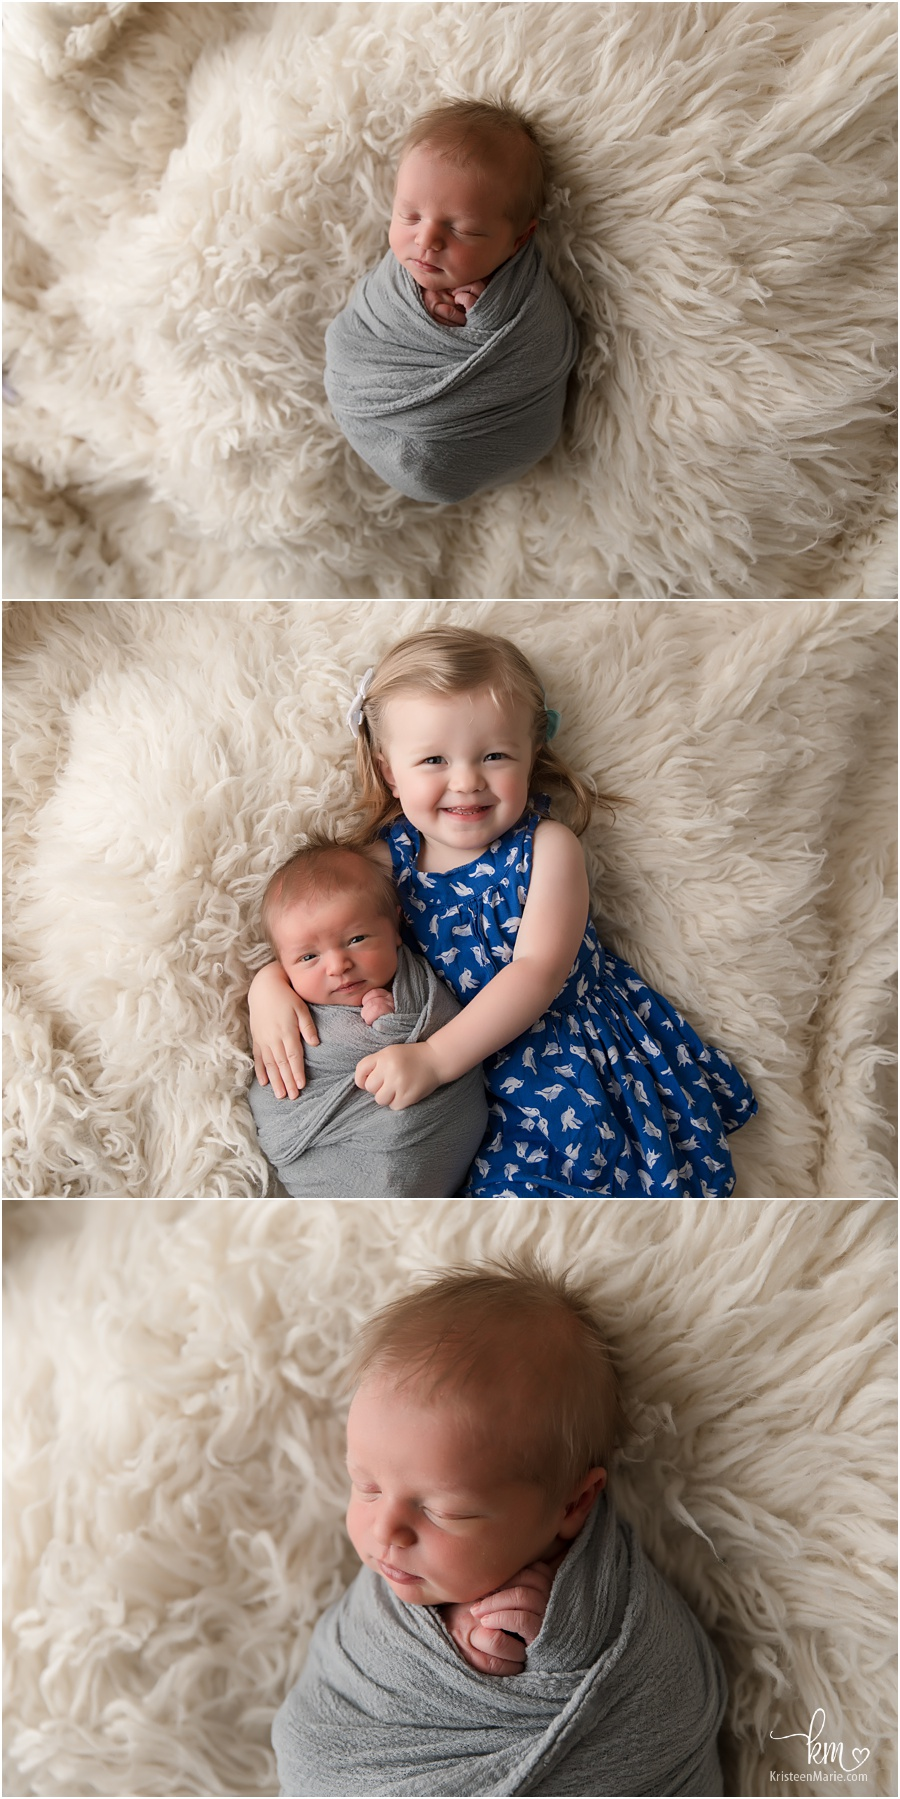 sibling and newborn baby boy poses